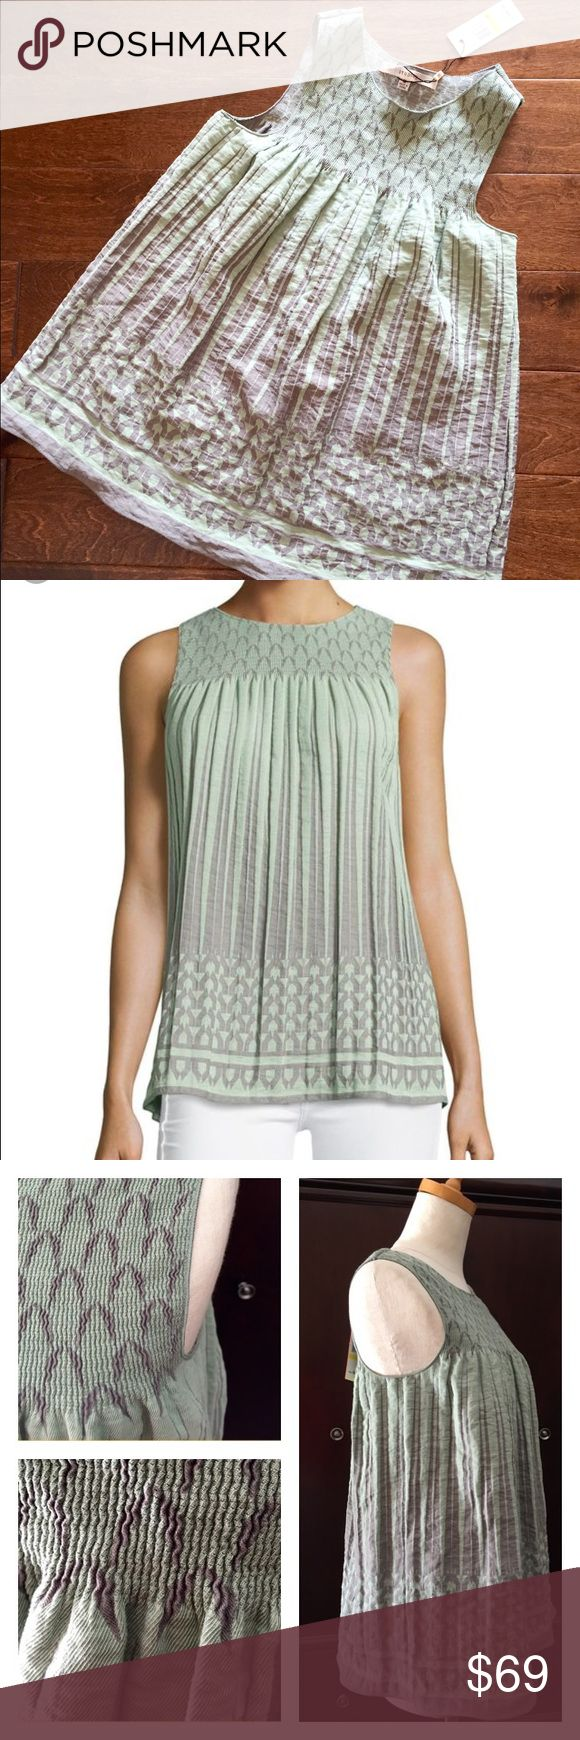 Green Smocked Jacquard Top Max Studio Medium  Beautiful Green and gray smocked jacquard A-line tank from Max Studio Nordstrom's. I love this top but it's too long for me. Size medium. Max Studio Tops Tank Tops